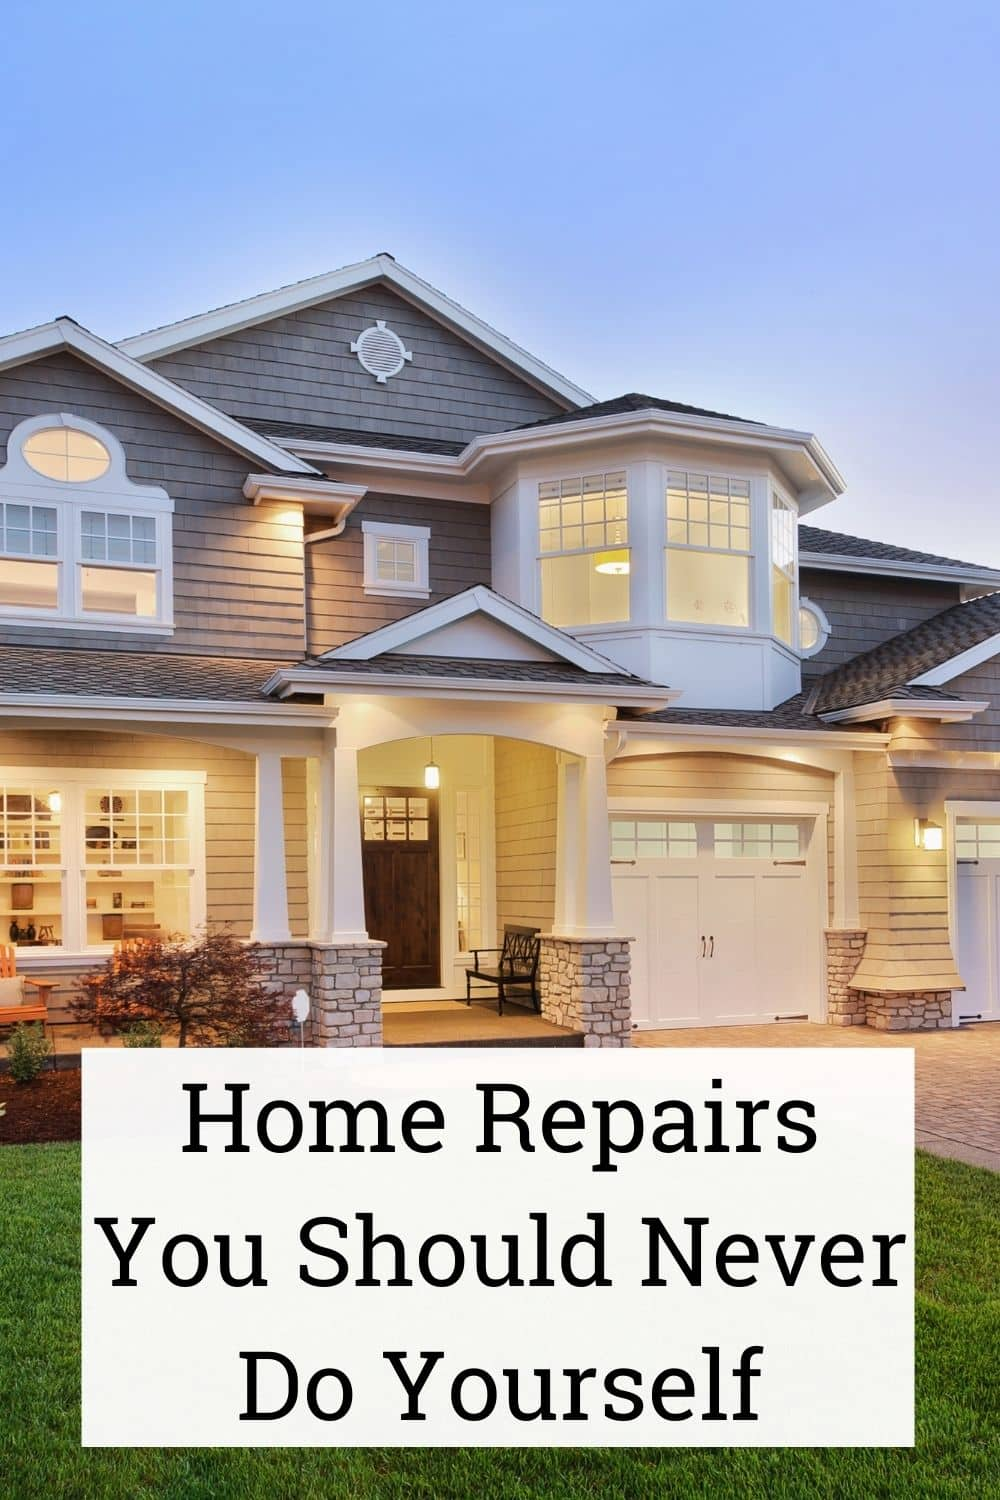 Home Repairs You Should Never Do Yourself